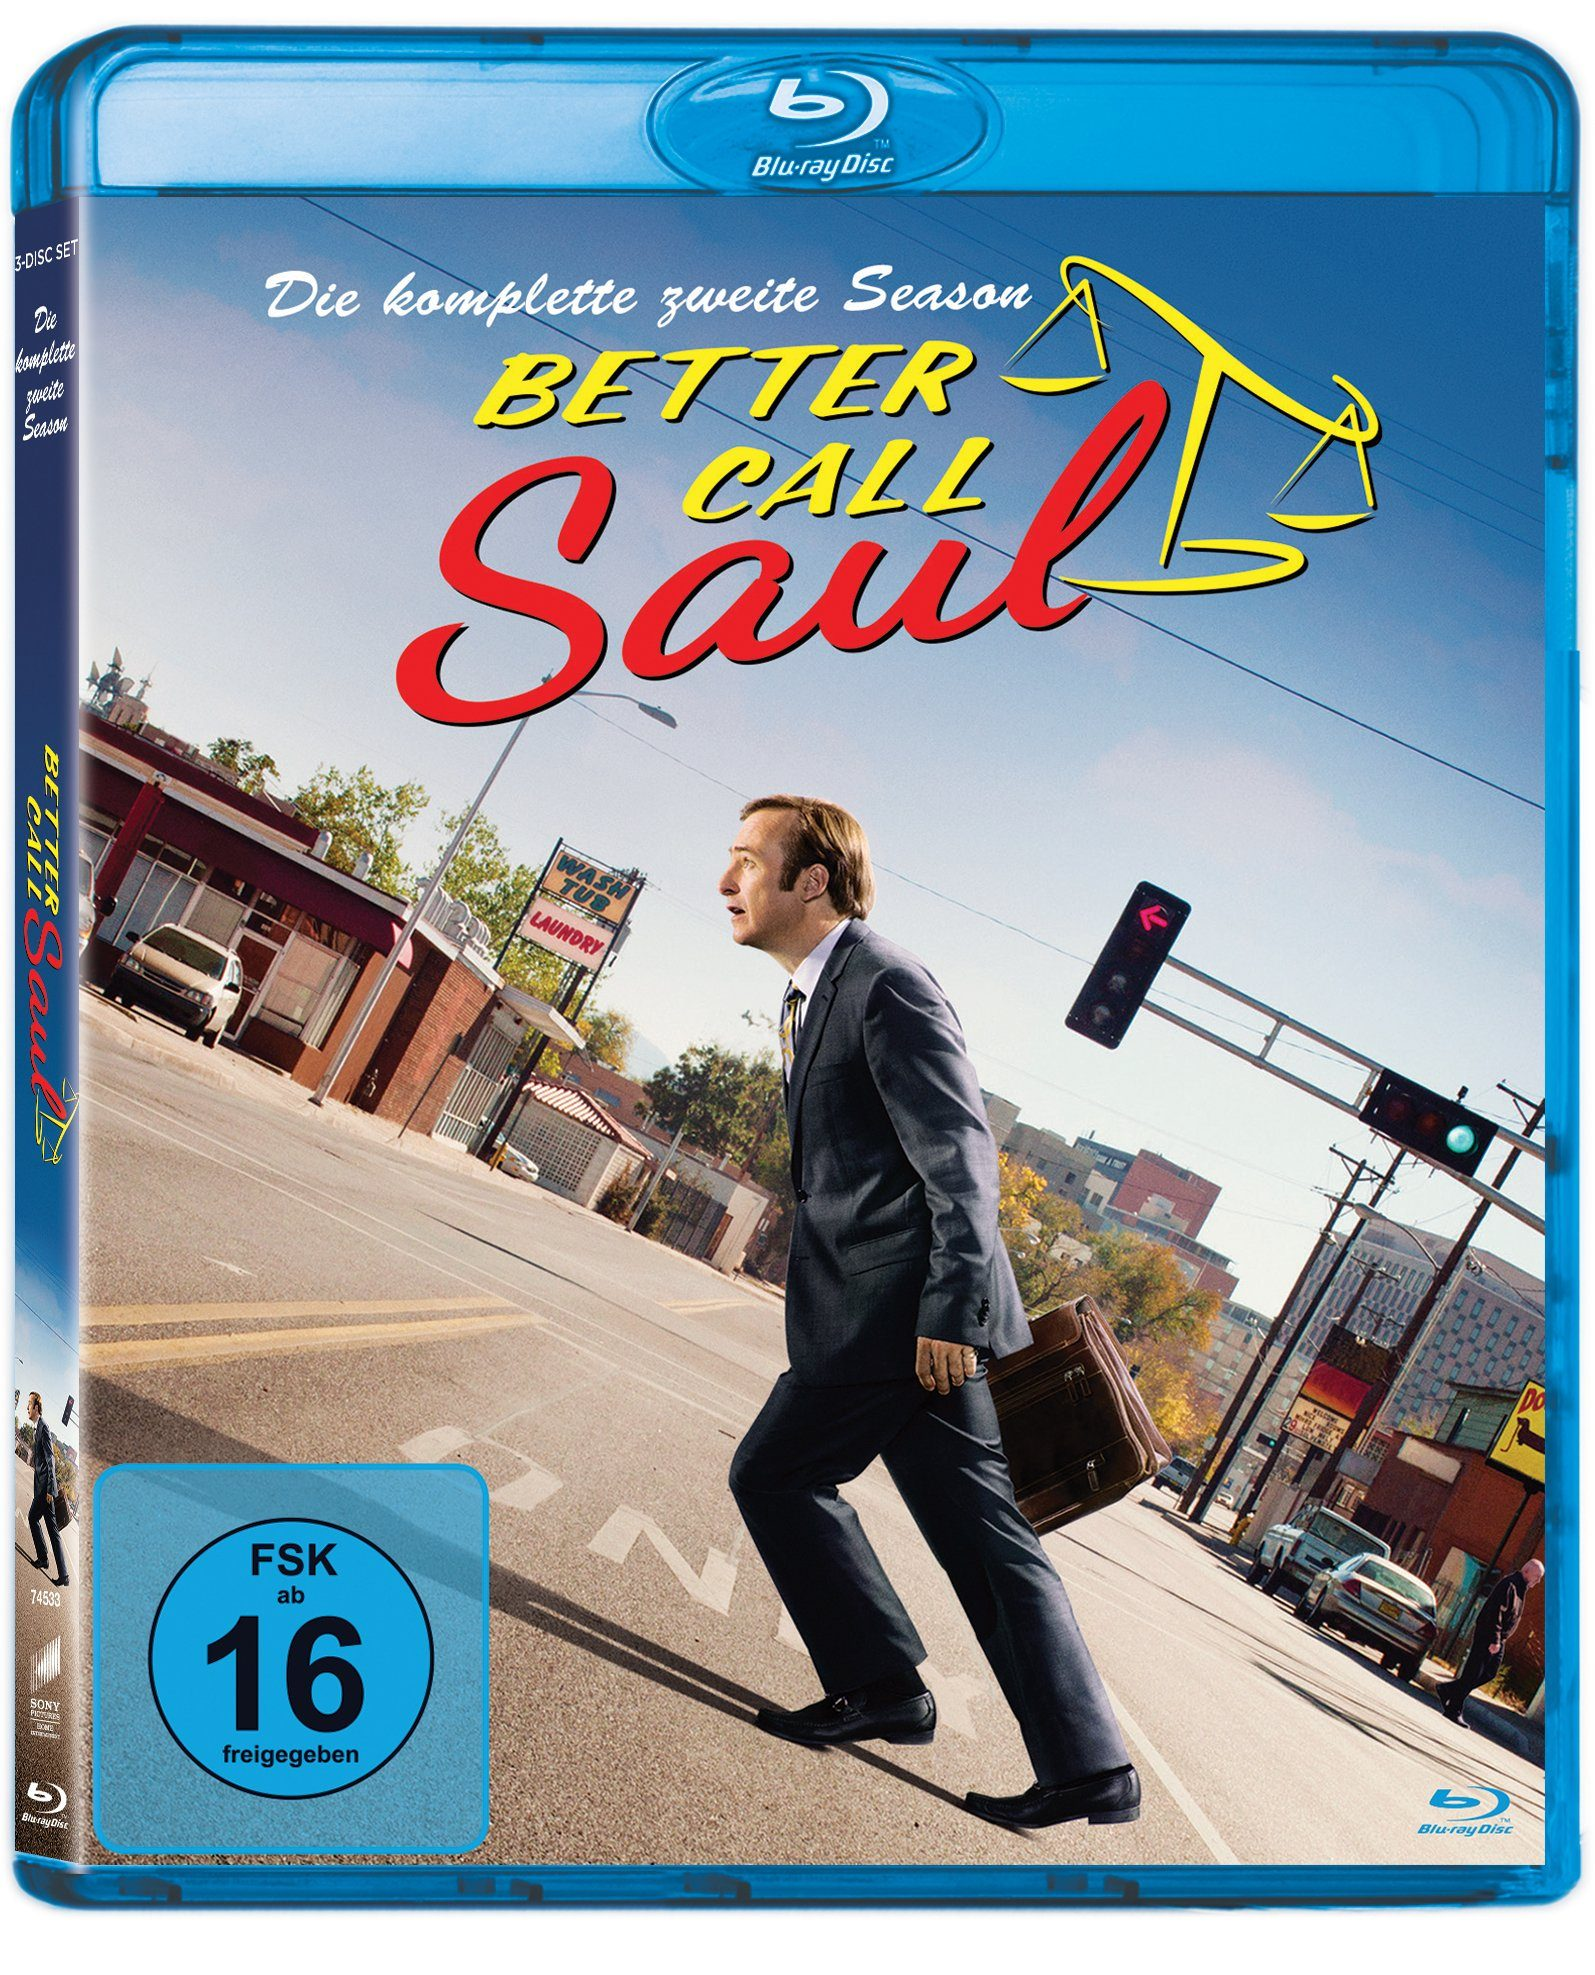 Sony Pictures Blu-ray »Better Call Saul Staffel 2«